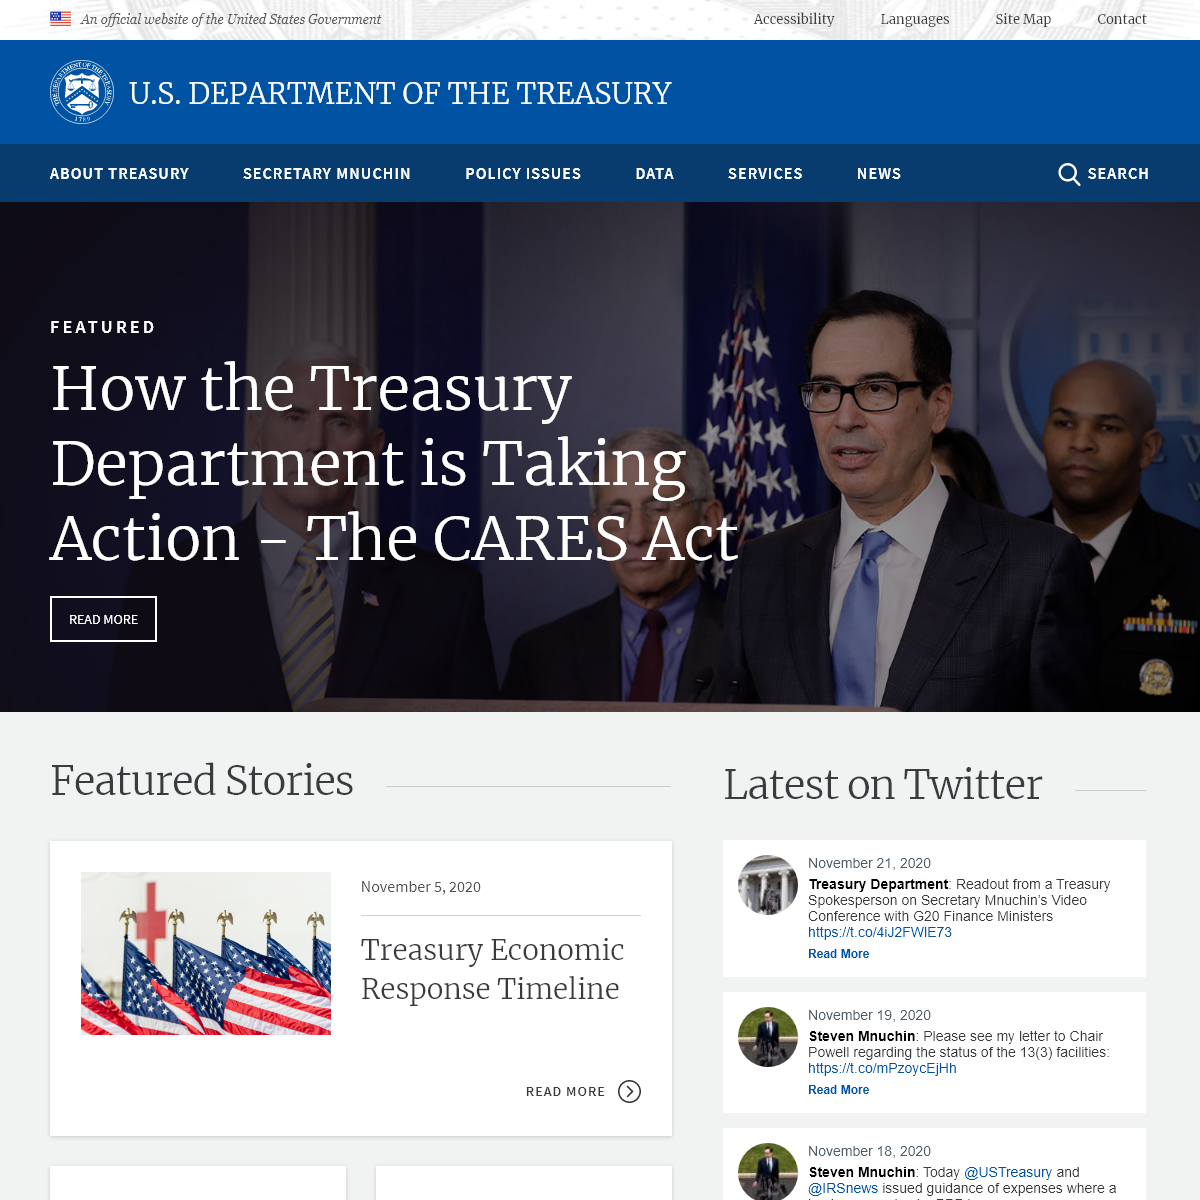 Front page - U.S. Department of the Treasury